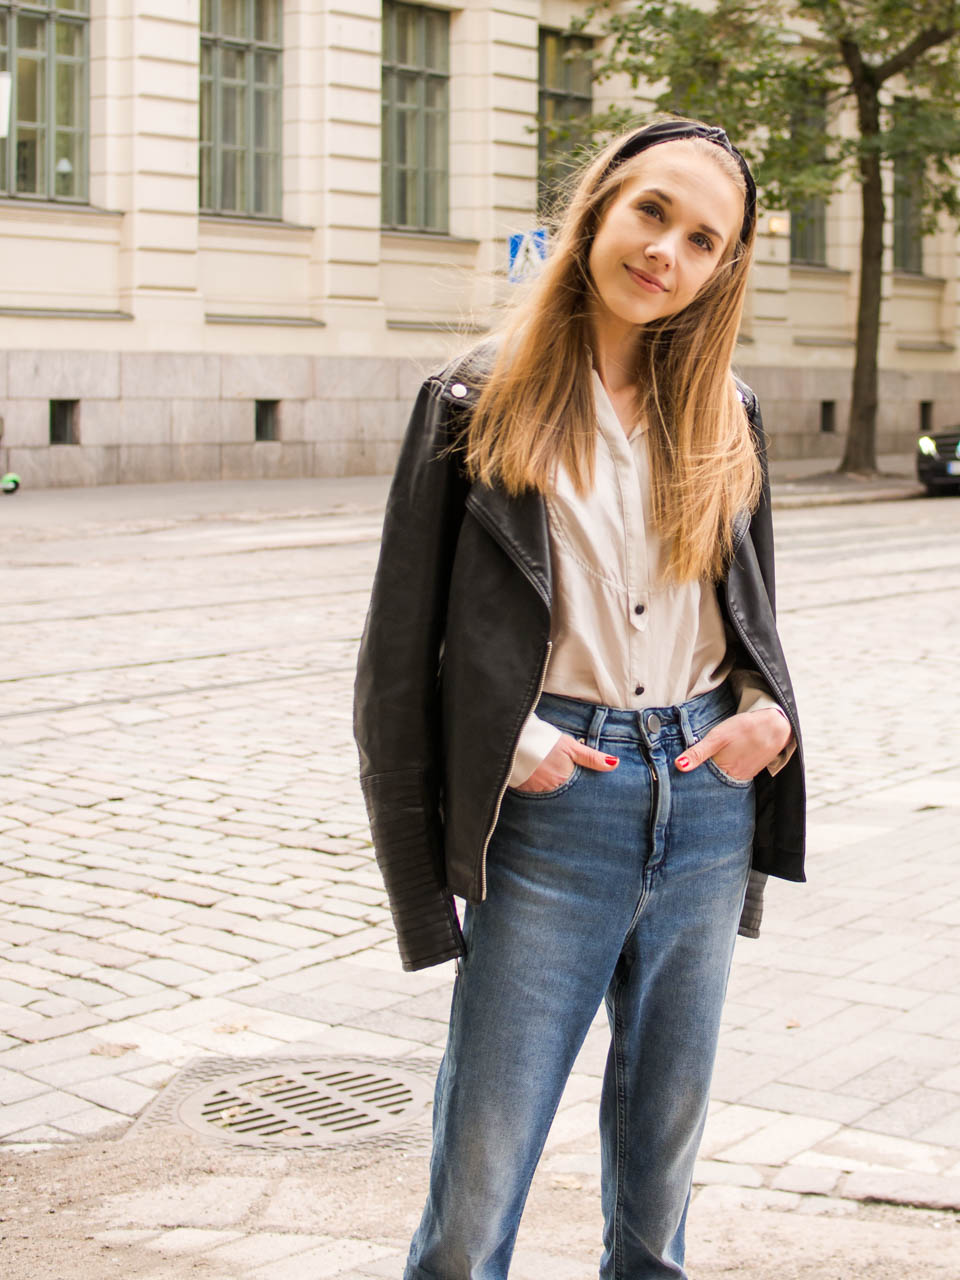 Autumn outfit with leather jacket, satin skirt, mom jeans and headband - Syksyinen asu nahkatakin, satiinipaidan, farkkujen ja hiuspannan kanssa